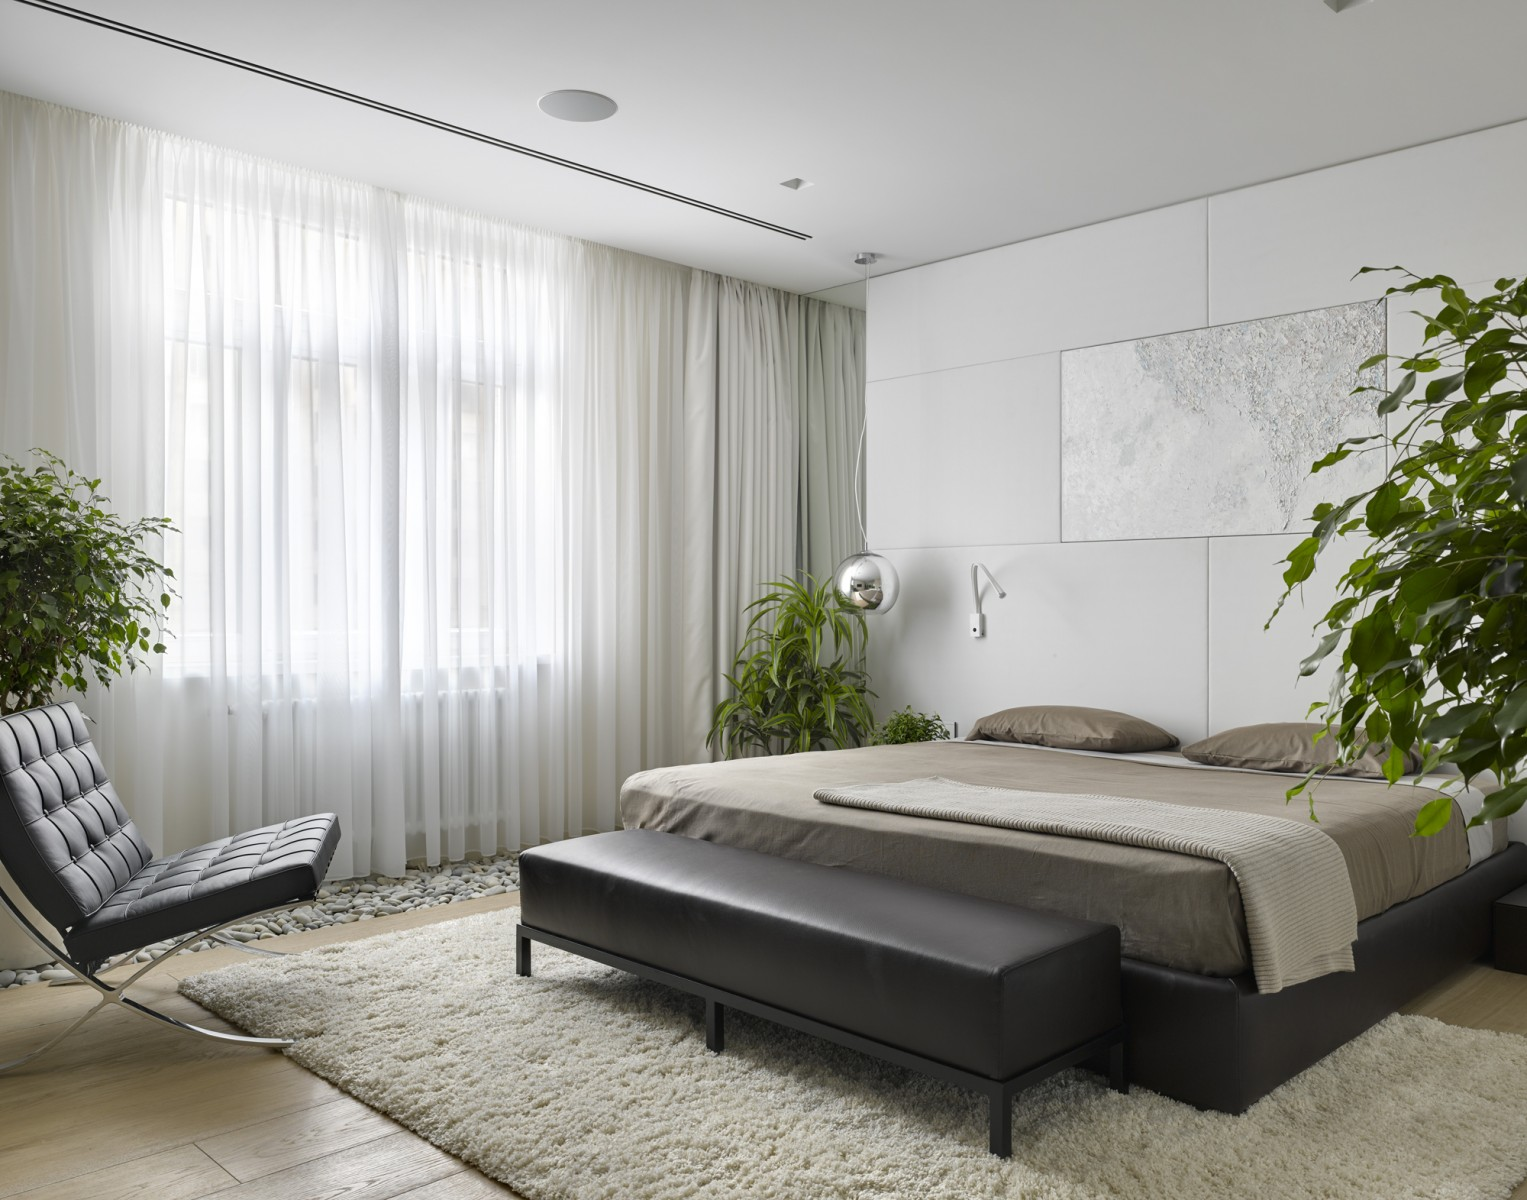 20 Small Bedroom Ideas That Will Leave You Speechless ... on Beautiful Bedroom Ideas For Small Rooms  id=12145